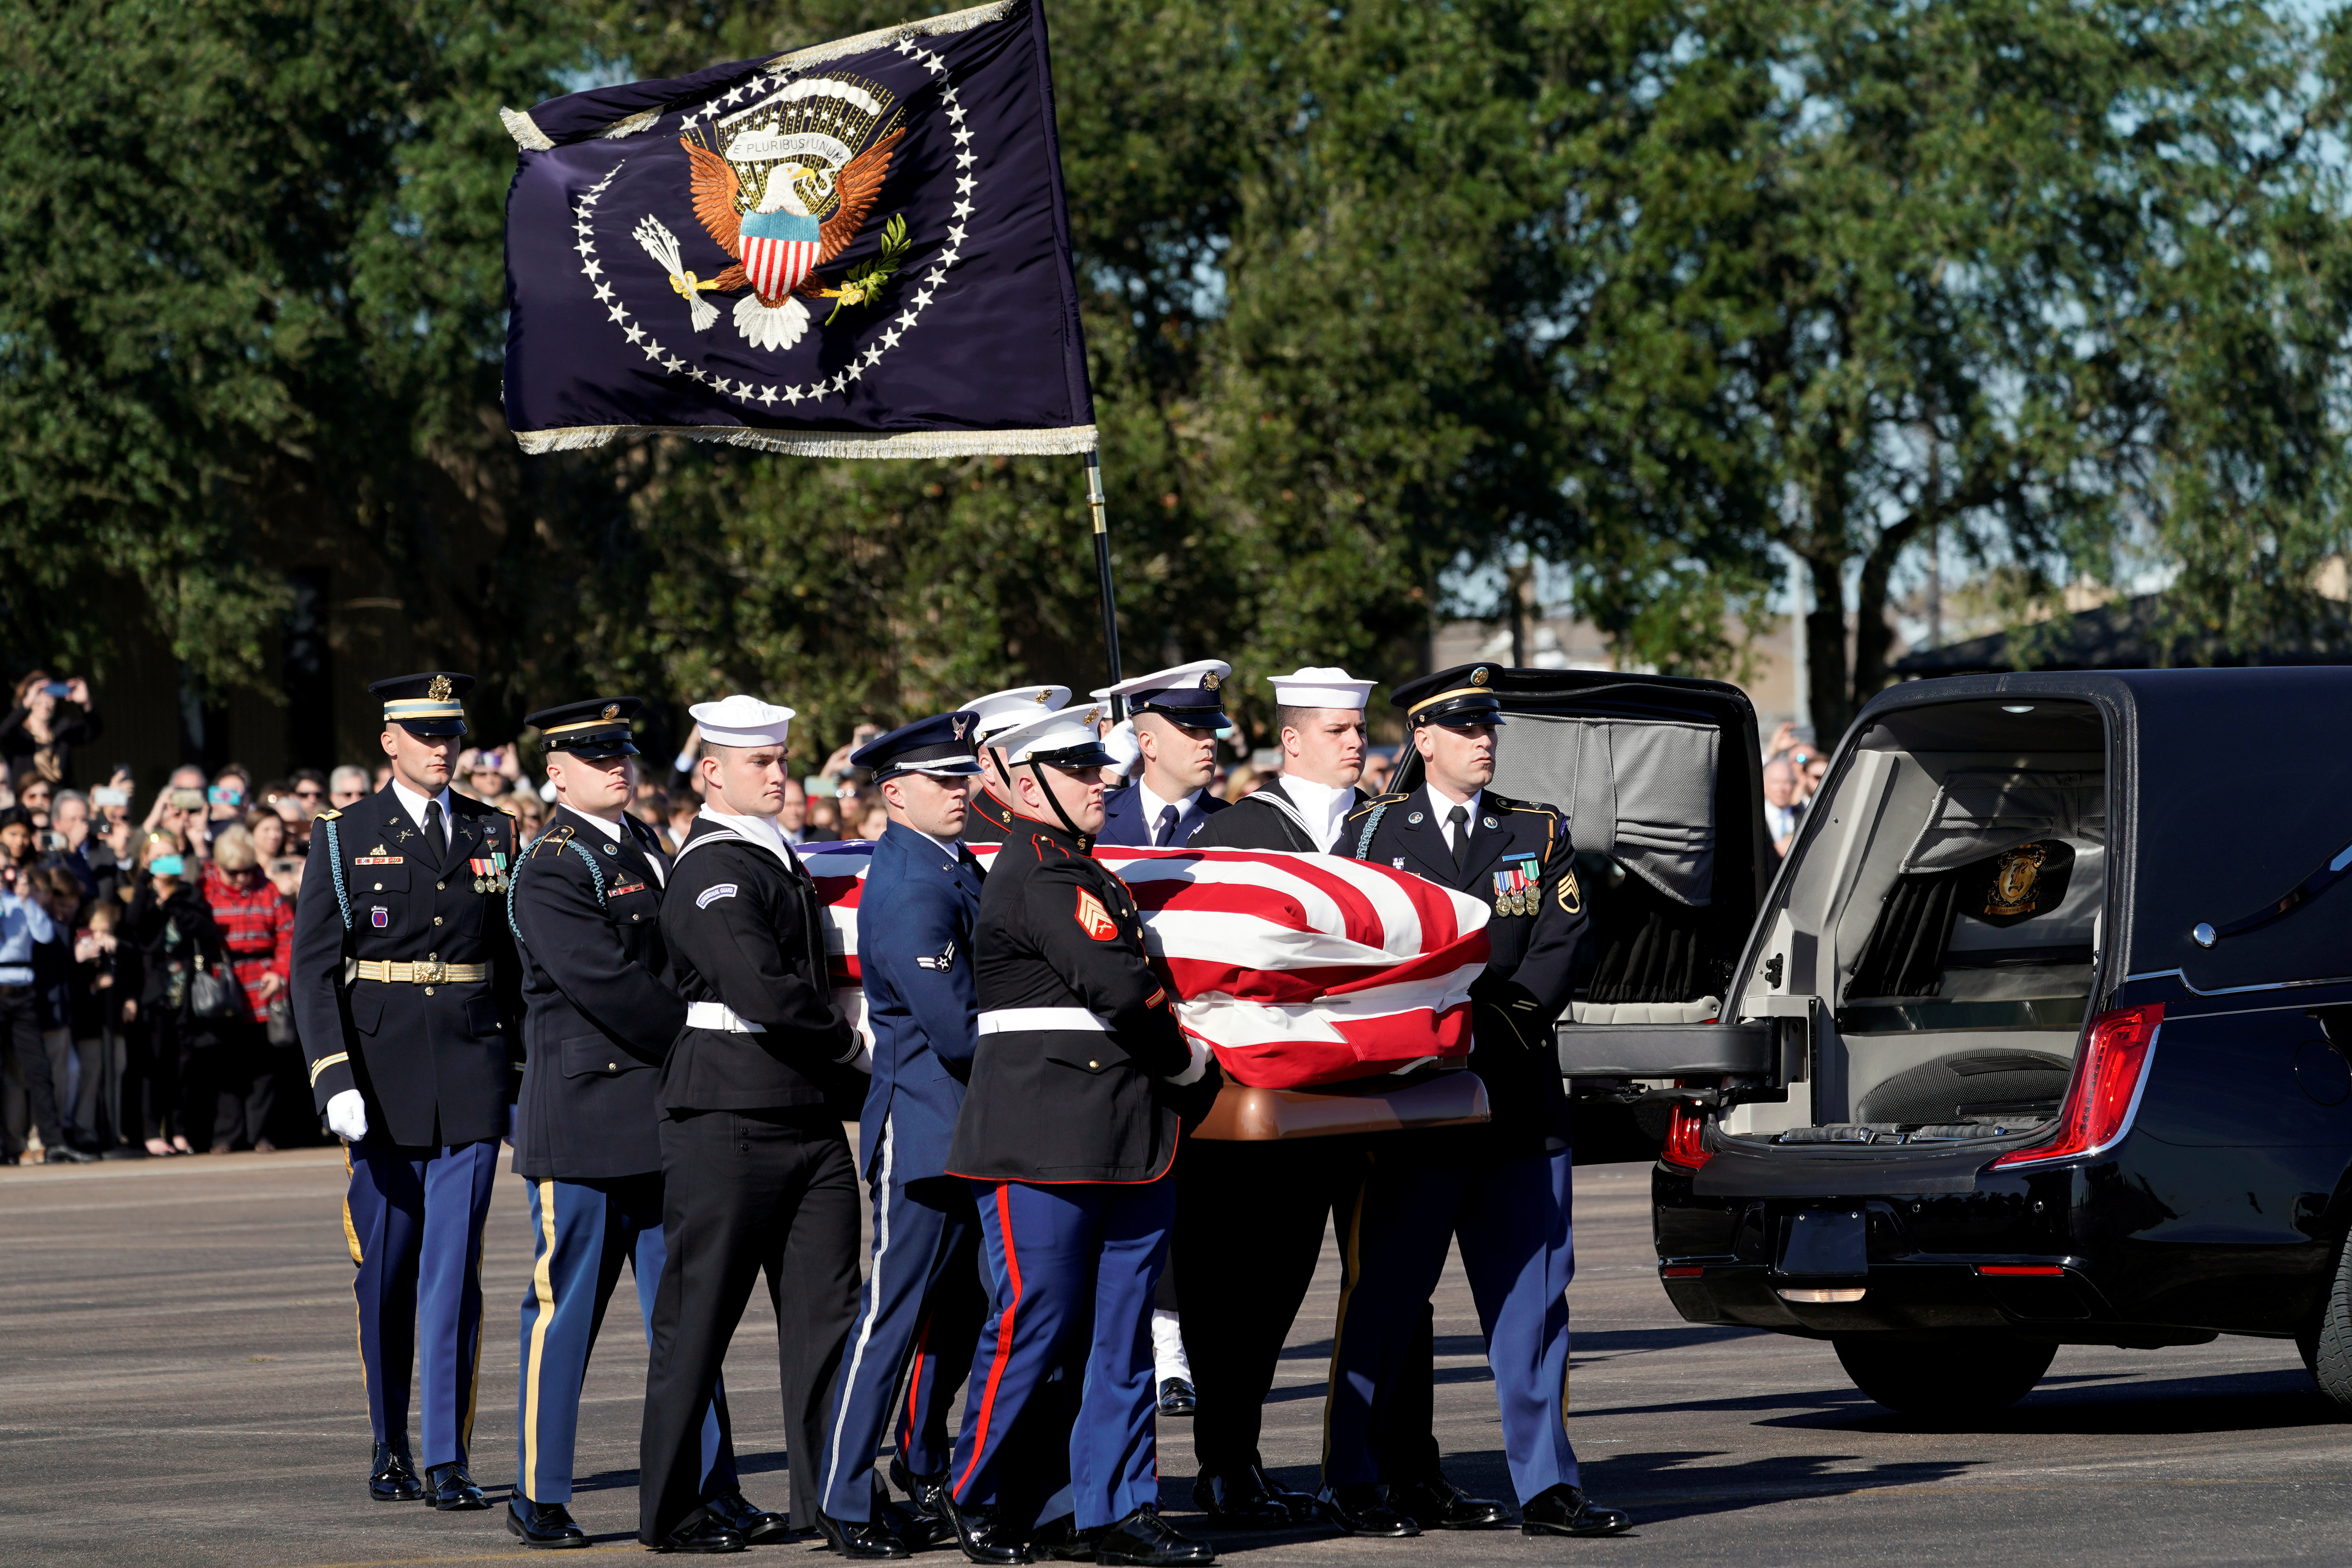 The flag-draped casket of former U.S. President George H.W. Bush is carried by a joint services military honor guard in Houston, Texas U.S., December 3, 2018. (David J. Phillip/Pool via REUTERS)